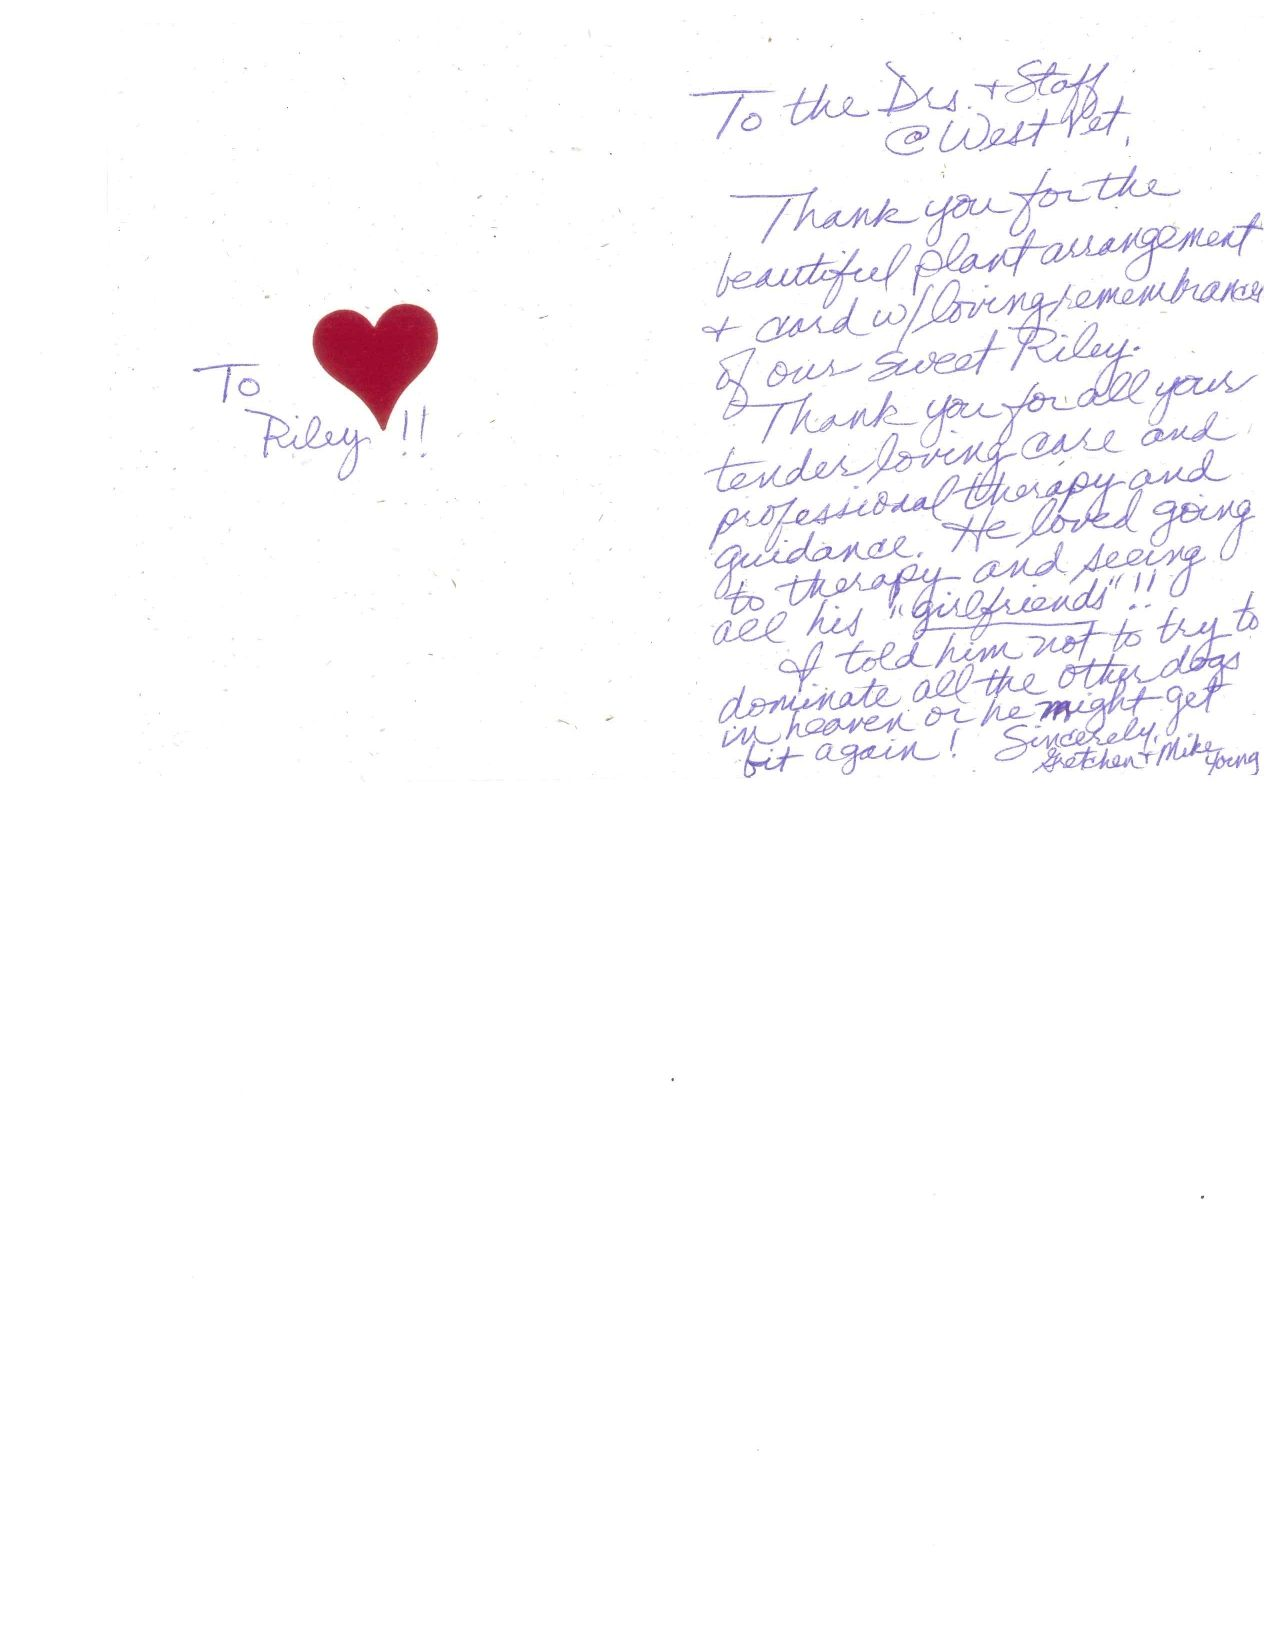 Letters From Clients | WestVet